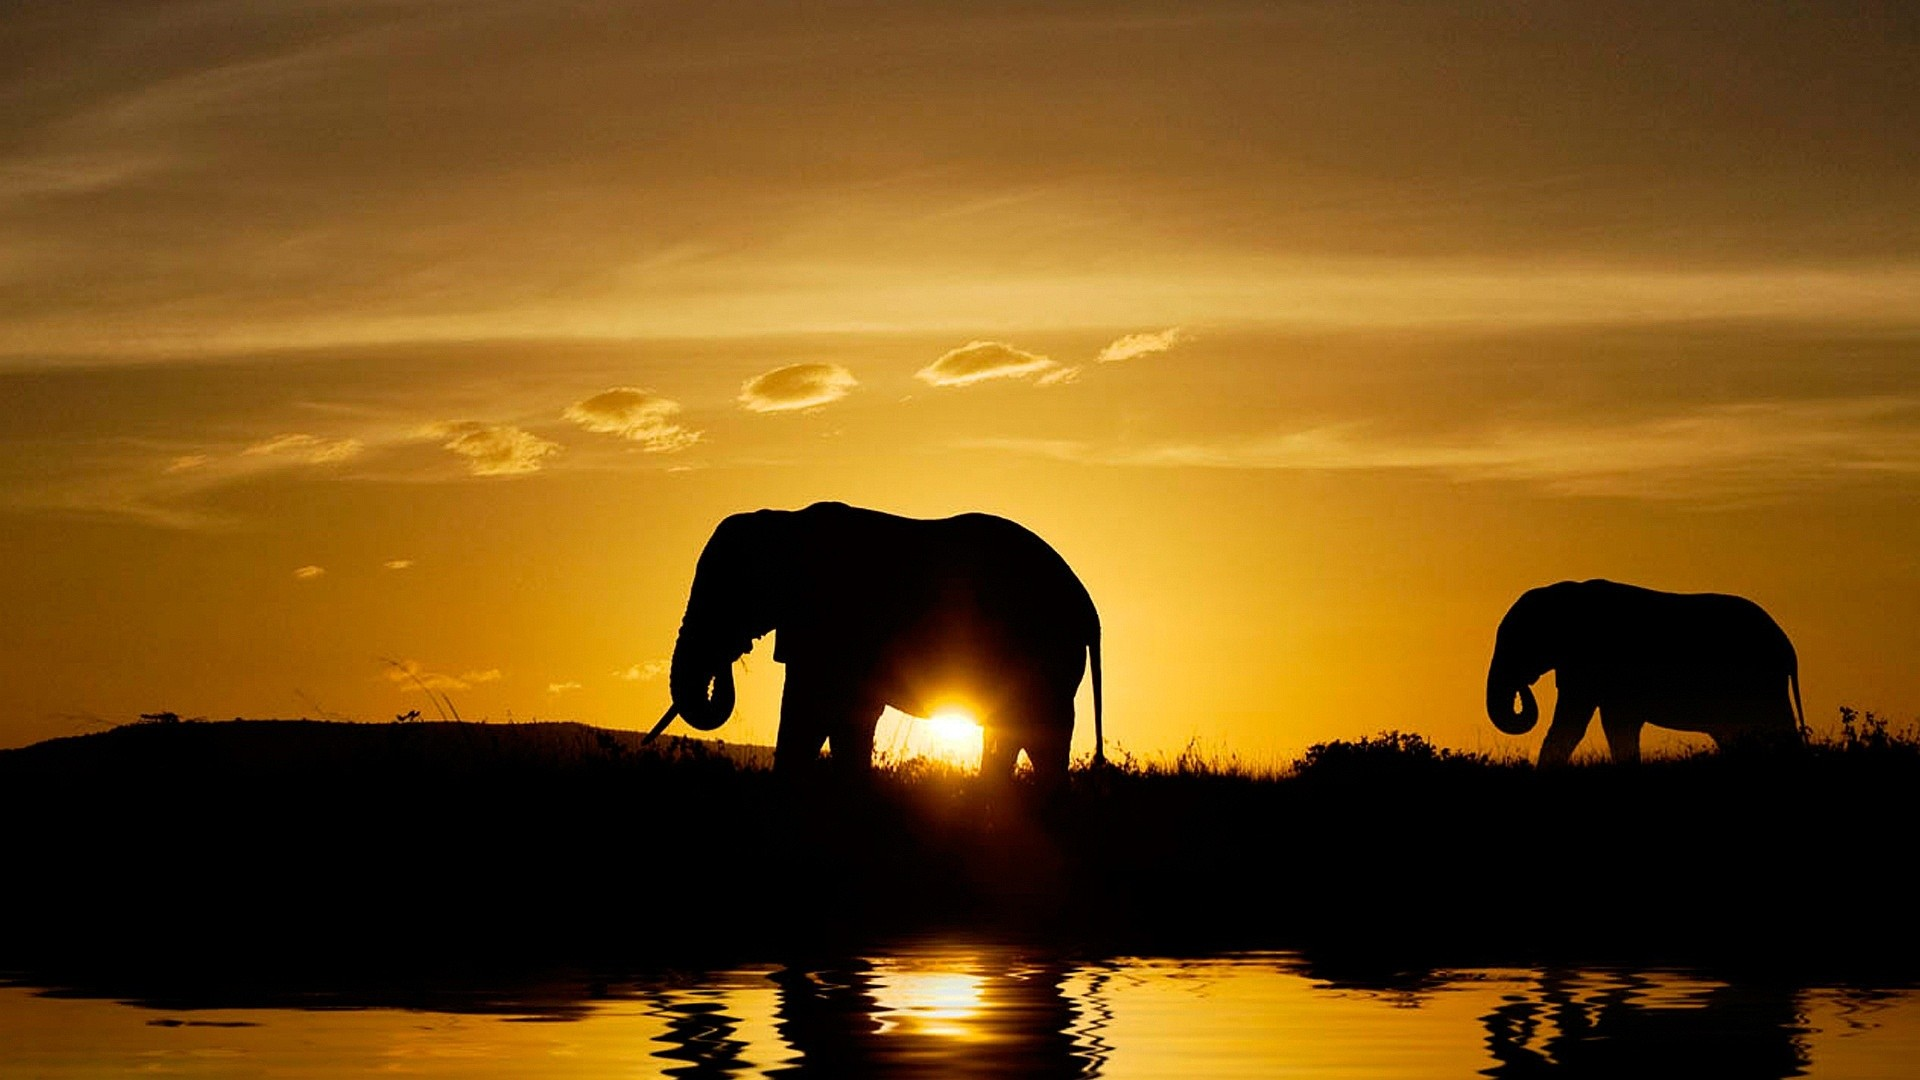 Res: 1920x1080, Elephant-HD Wallpapers Free Download